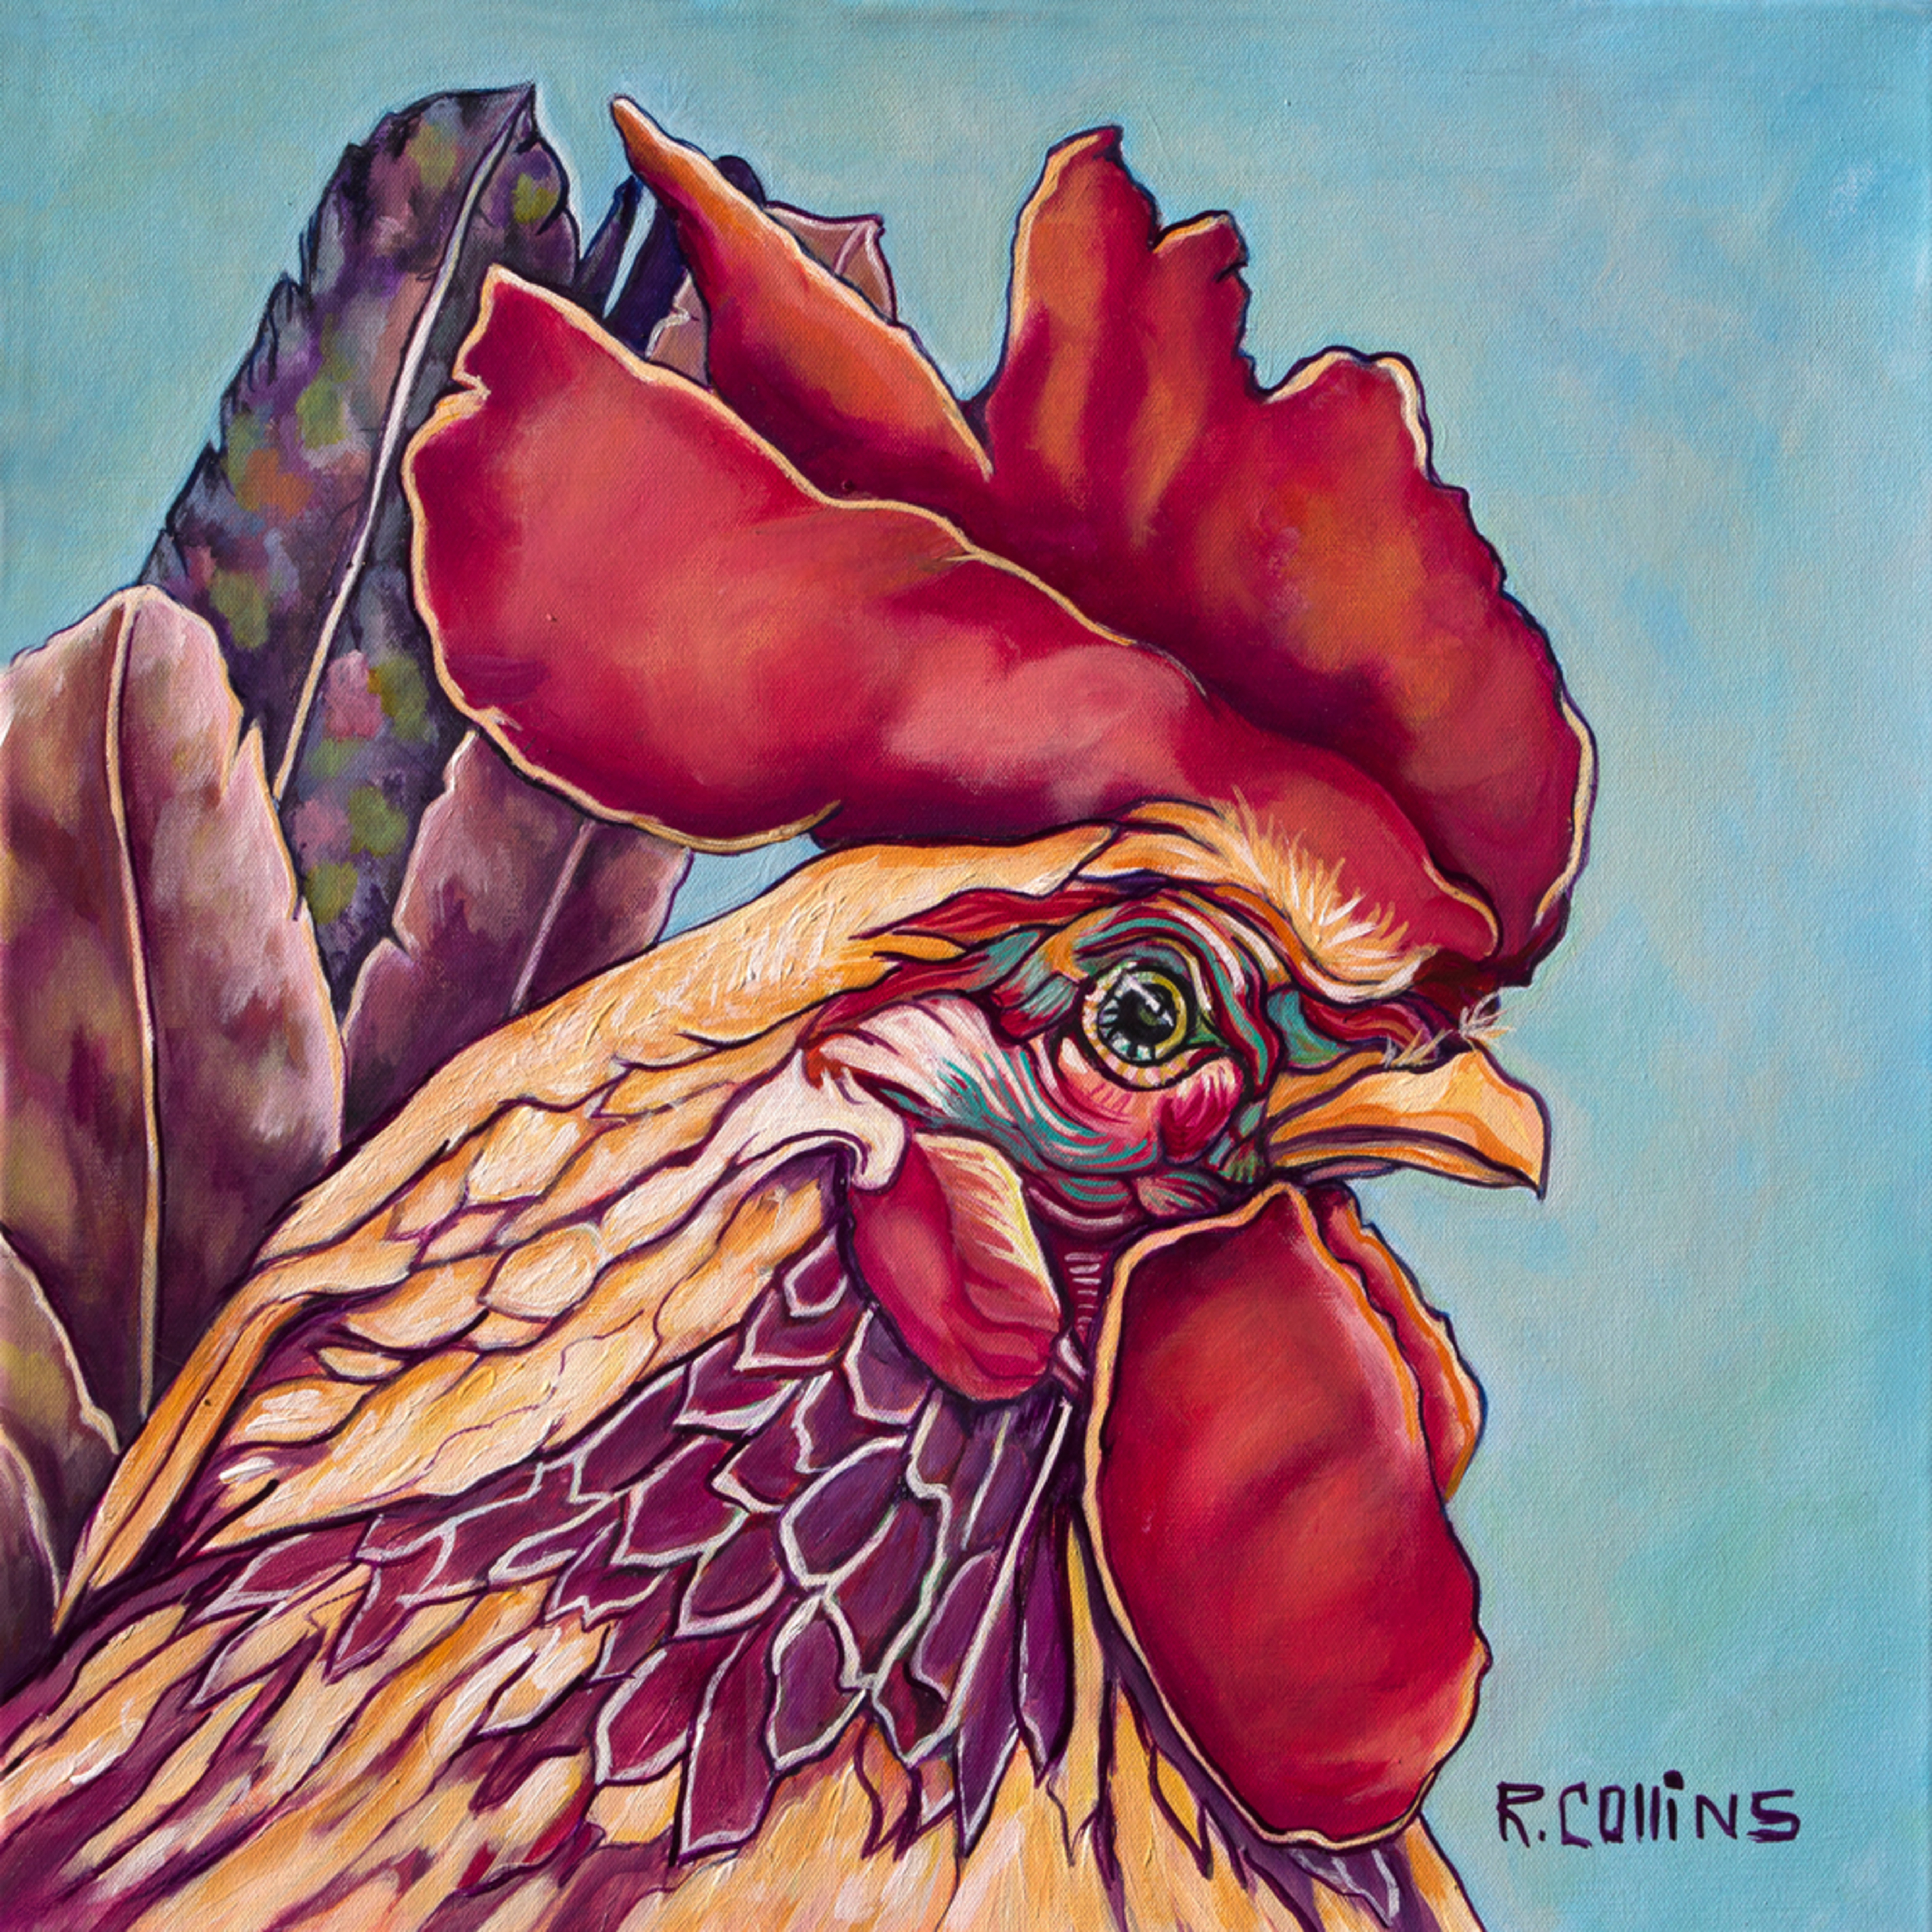 Rouge rooster zoti1f